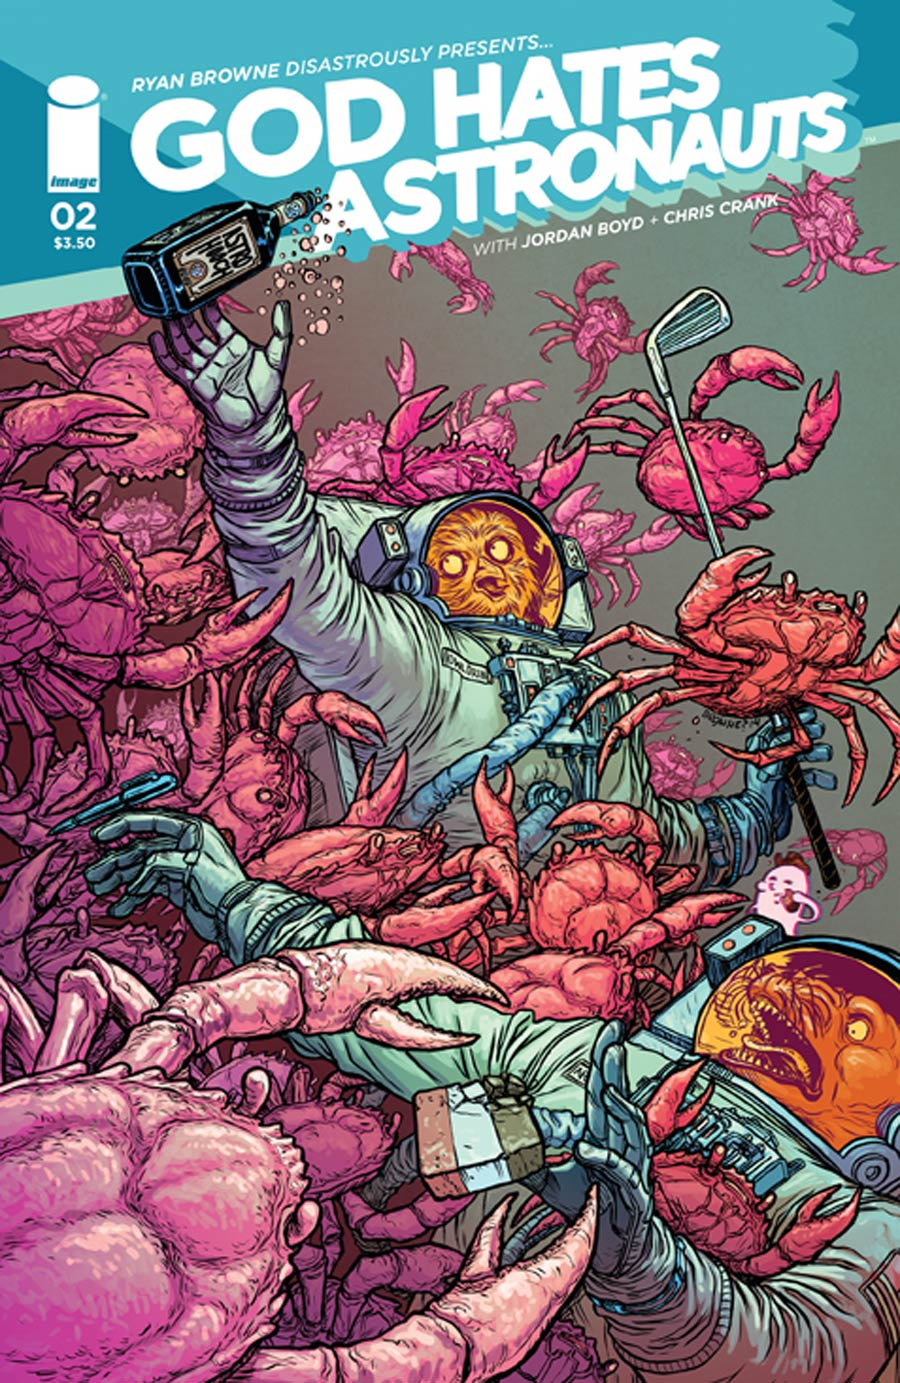 God Hates Astronauts #2 Cover A Ryan Browne